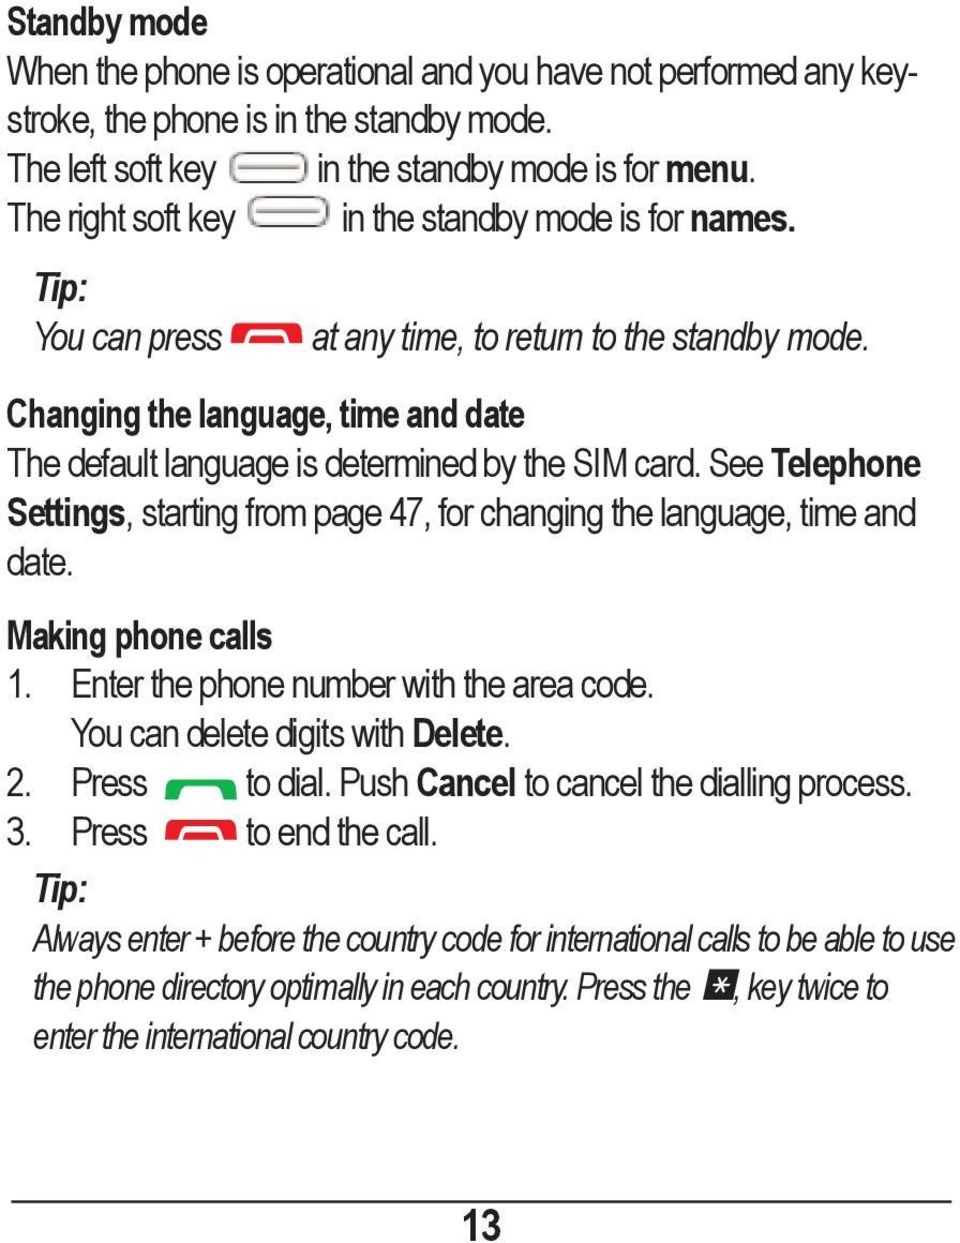 Changing the language, time and date The default language is determined by the SIM card. See Telephone Settings, starting from page 47, for changing the language, time and date. Making phone calls 1.